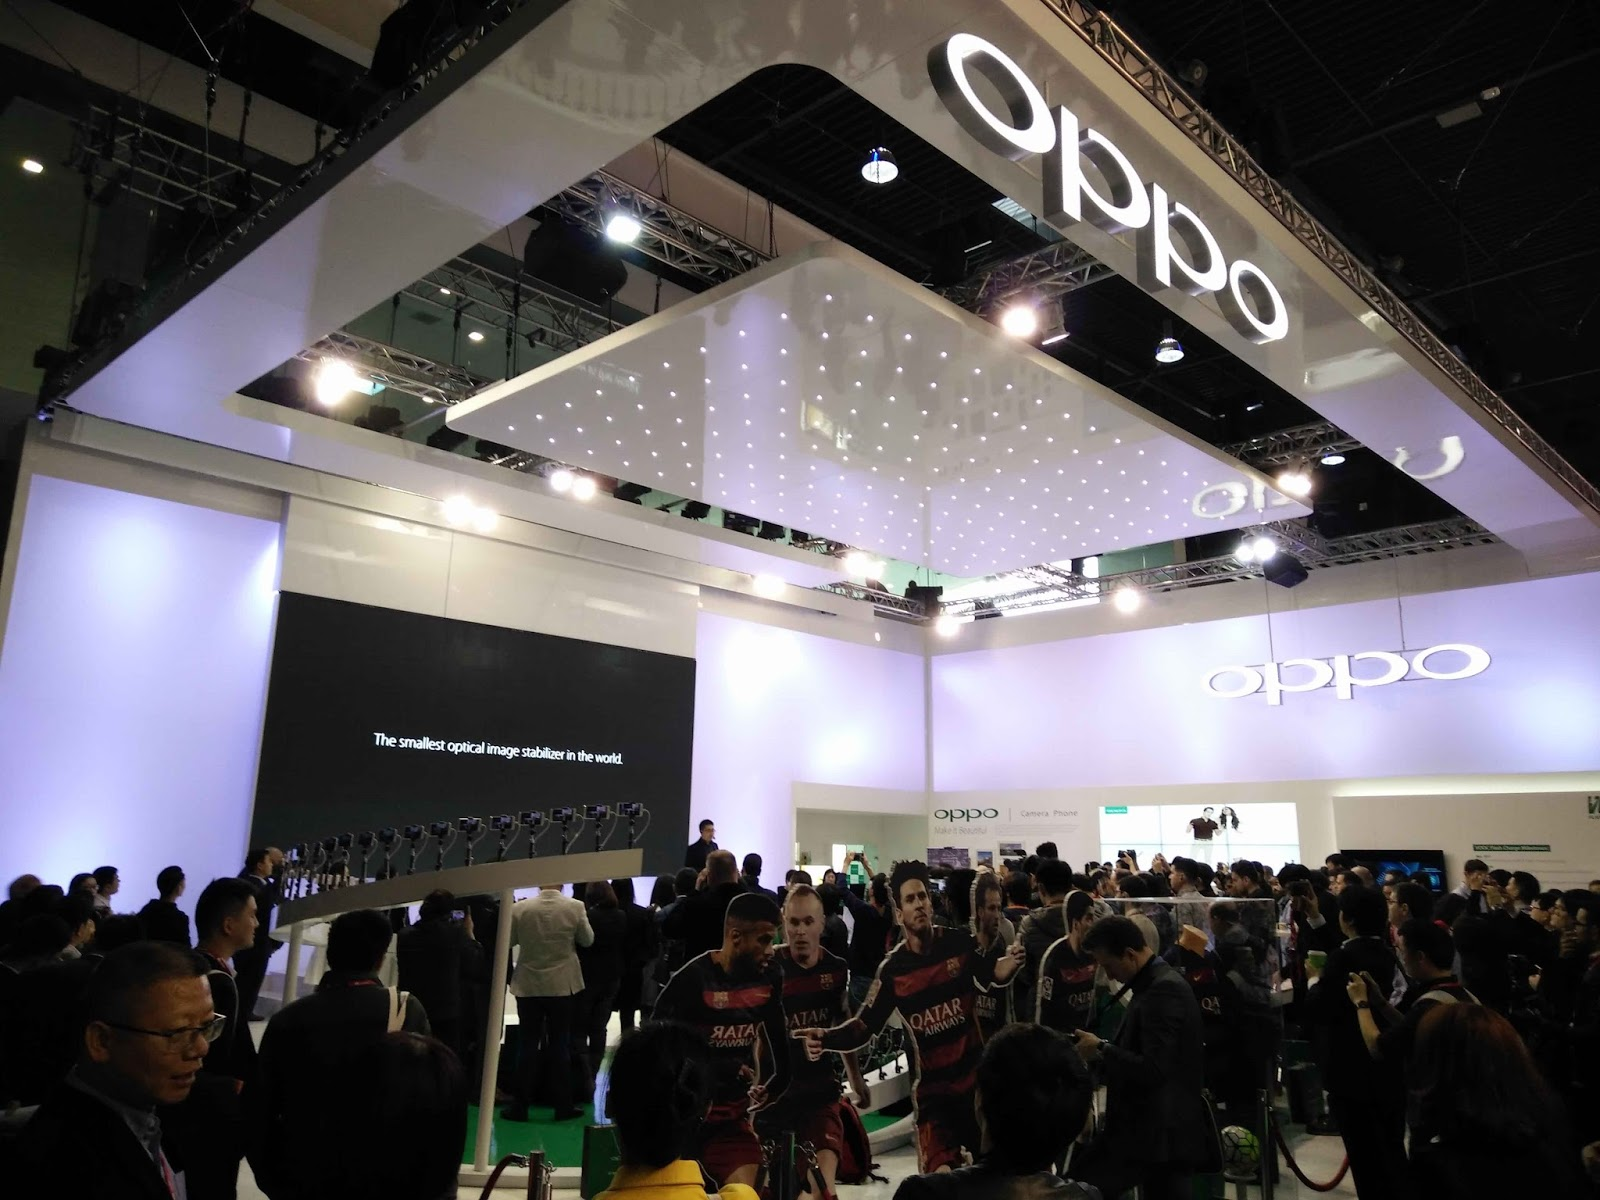 OPPO at MWC 2016